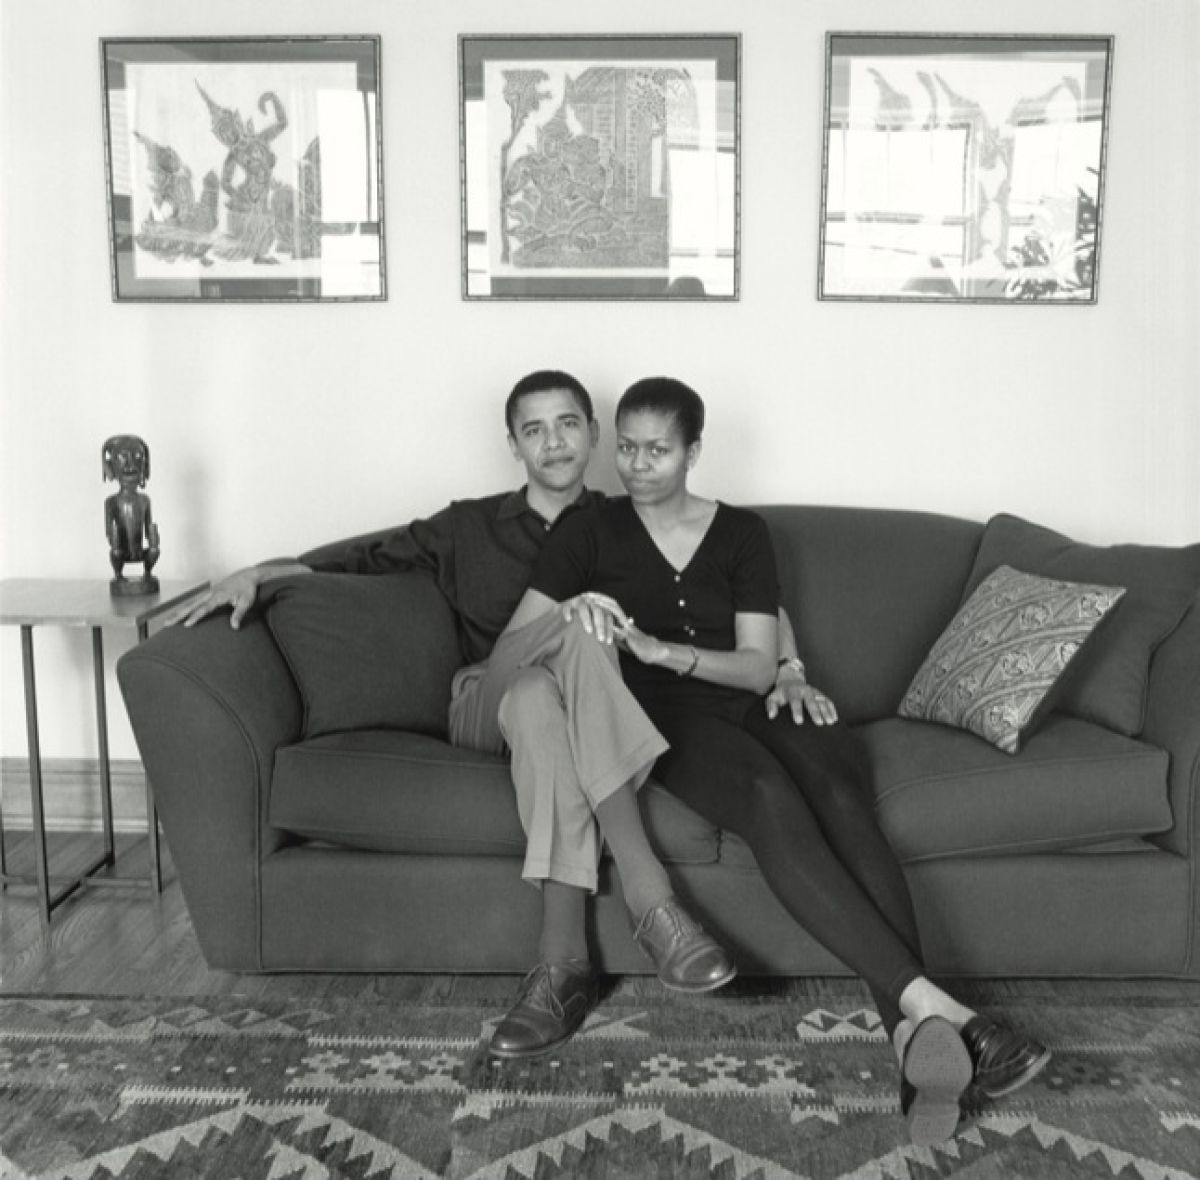 An interview with the Obamas, from 1996, when they were an unknown cou...